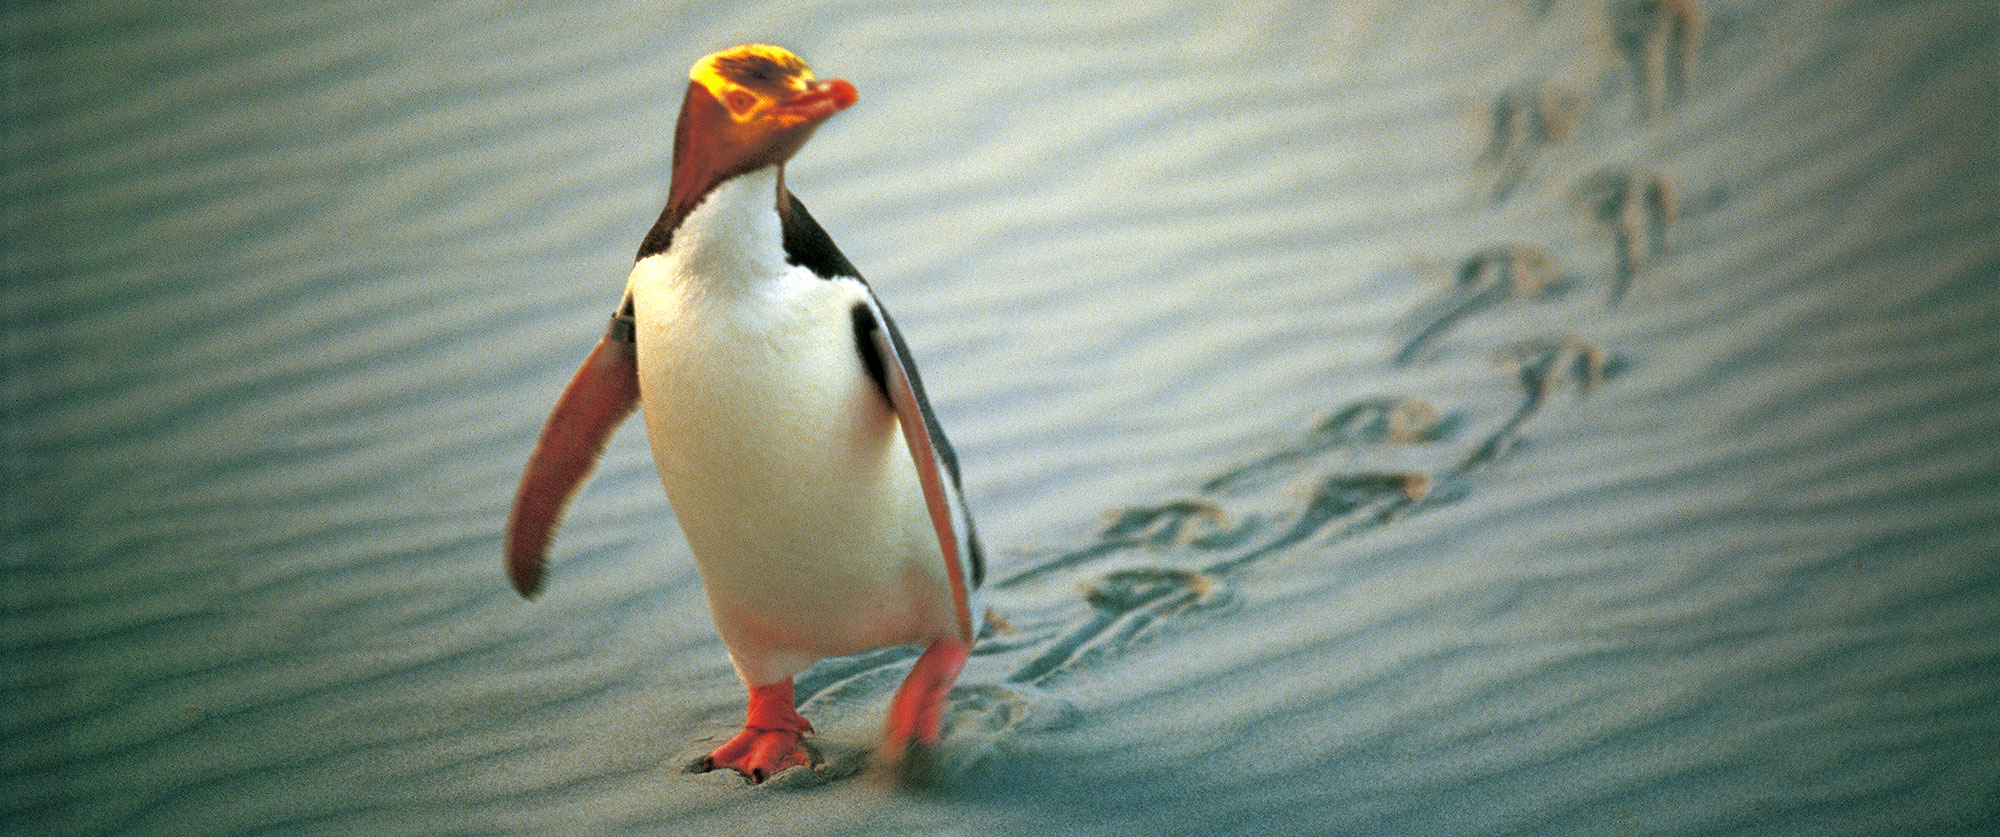 New Zealand Vacation - Penguins - Travel Expert - Where to See Penguins - New Zealand Luxury Vacation